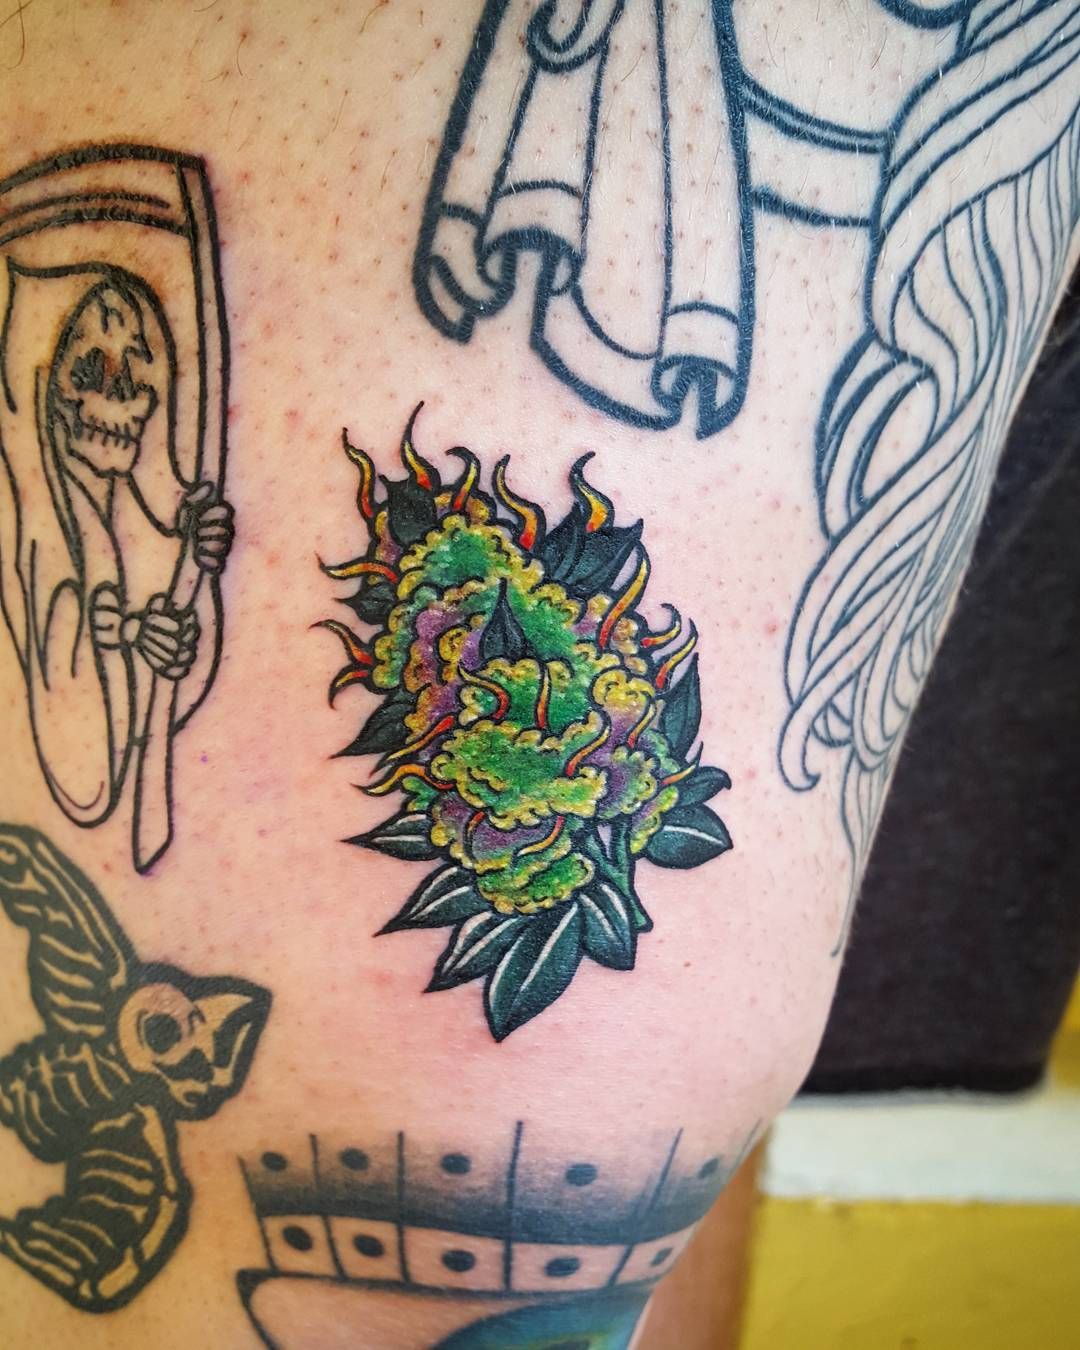 40 Smoking Hot Weed Tattoo Ideas – Are You Ready To Support The Cause? of 13 by Nancy